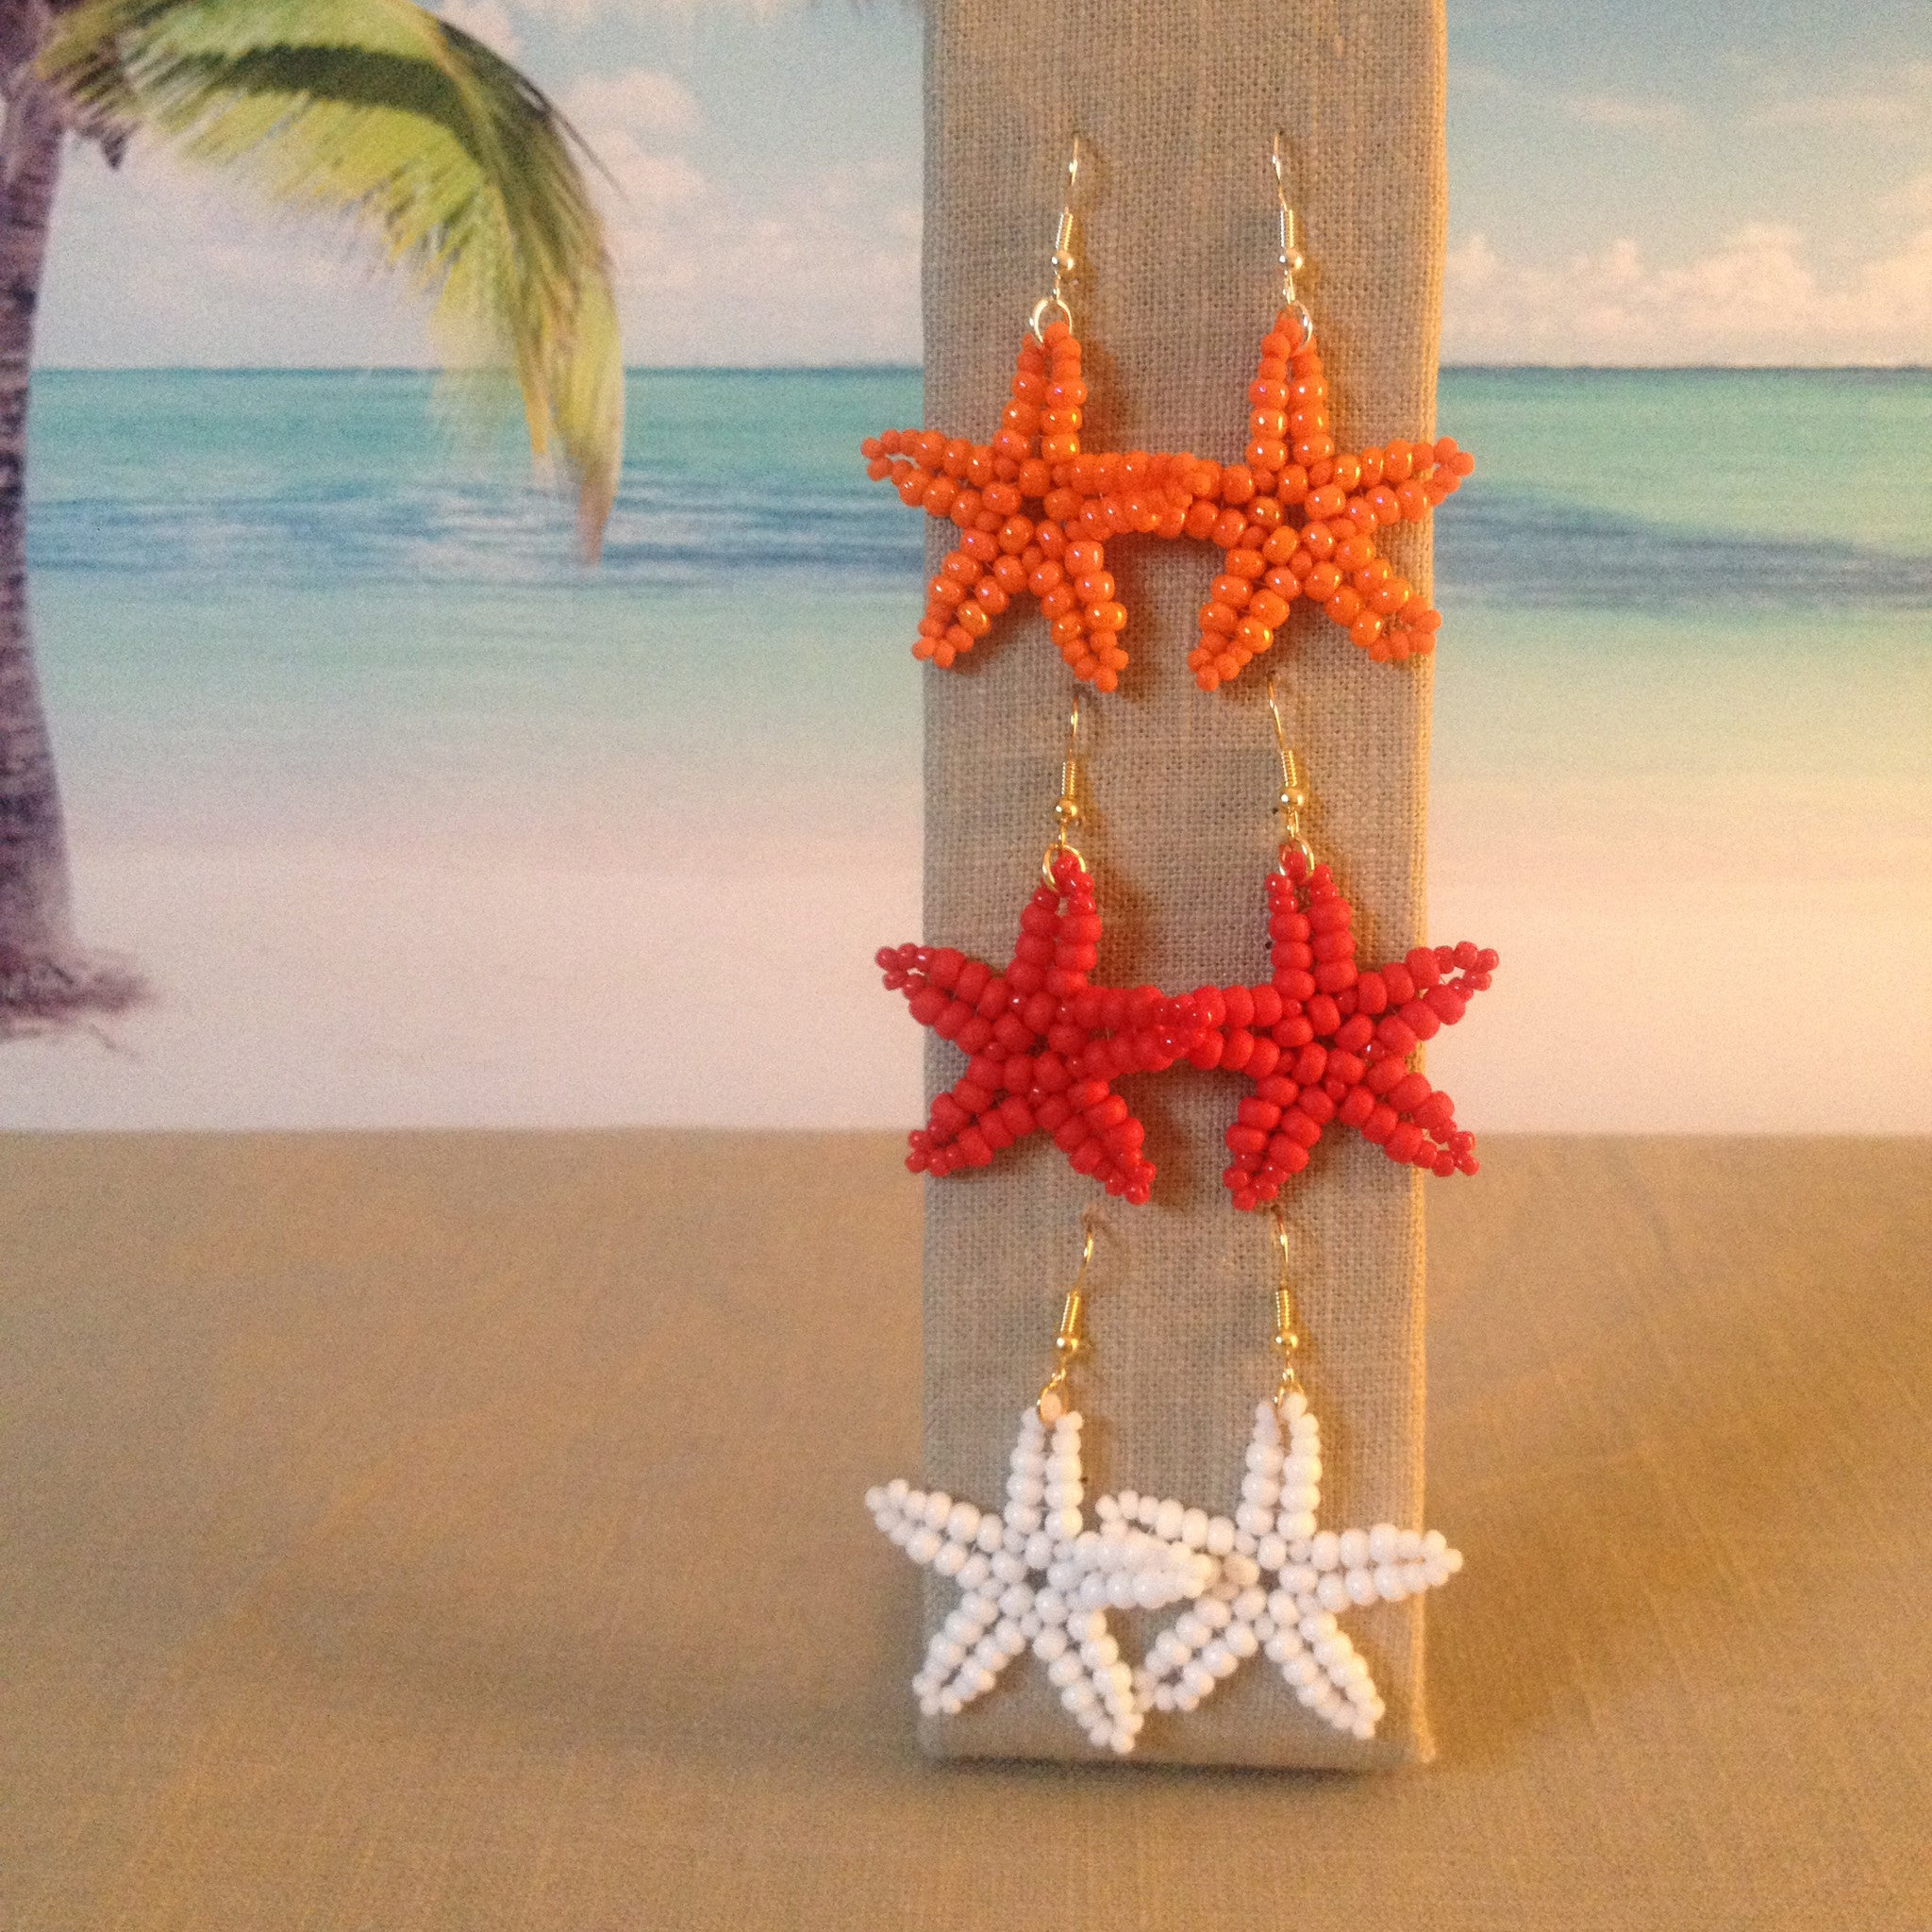 Starfish Beaded Earrings Handmade Vibrant Beach Colors coral orange red white  summer beaded by the beach fun ocean resort hypoallergenic cruise pool prime amazon